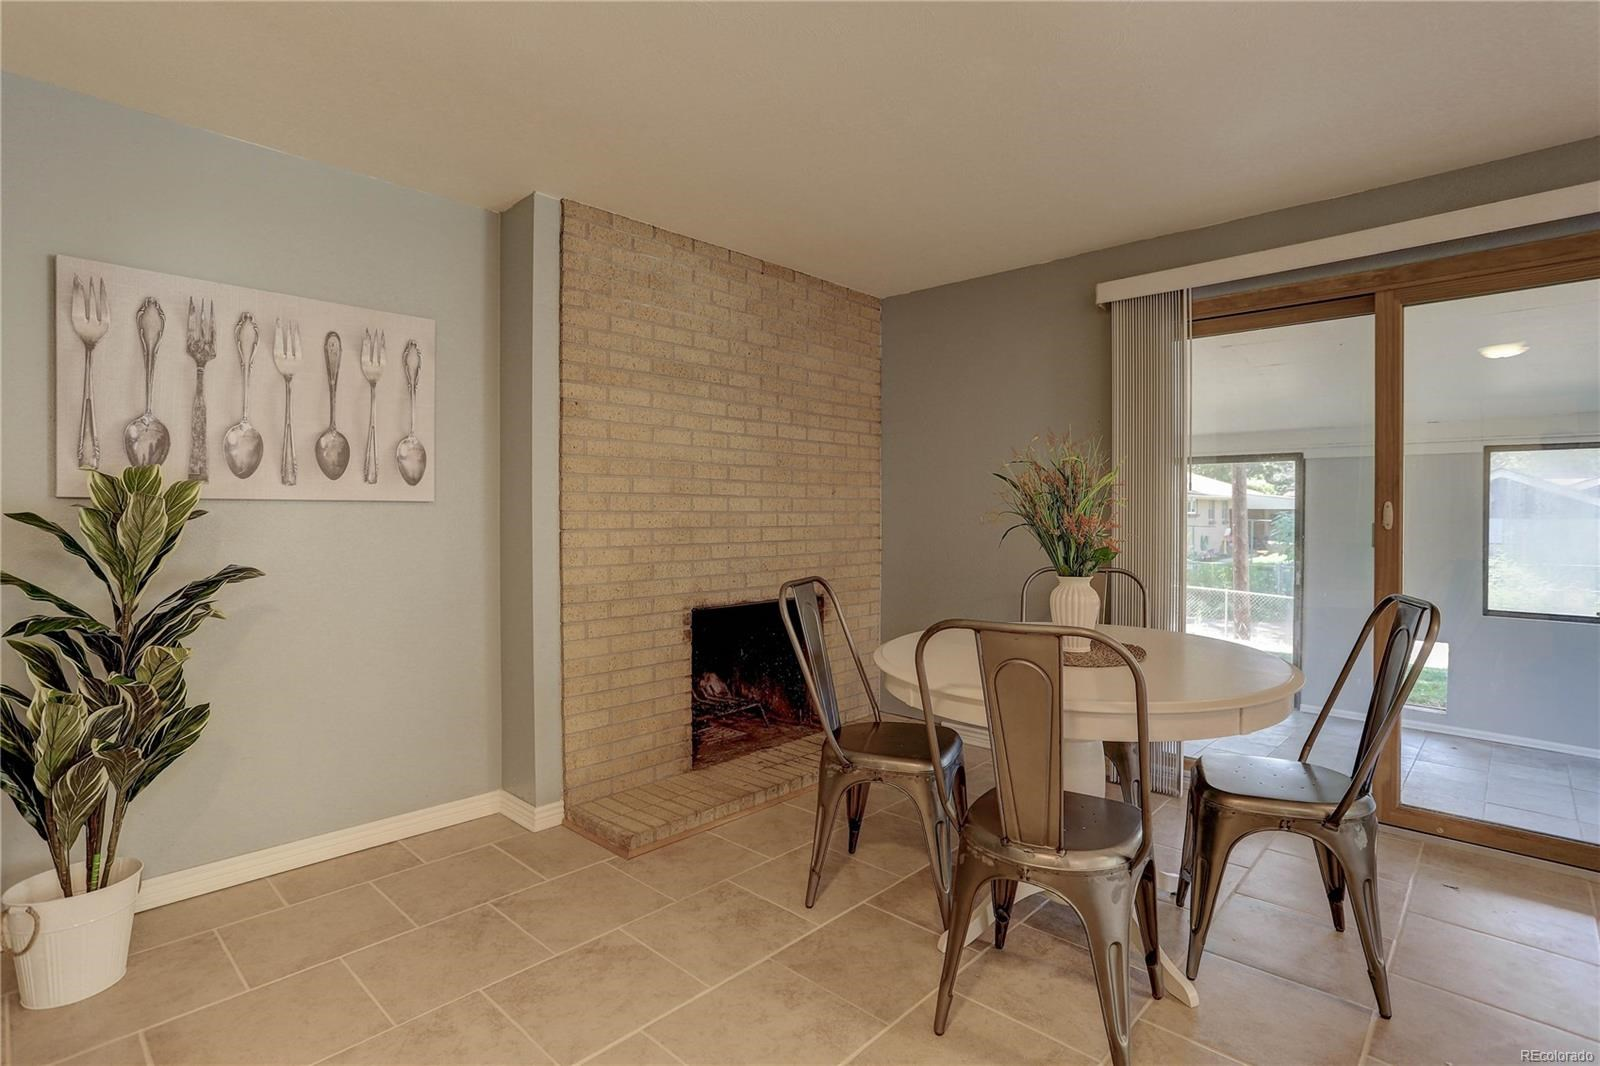 MLS# 2968148 - 9 - 2931 S Downing Street, Englewood, CO 80113